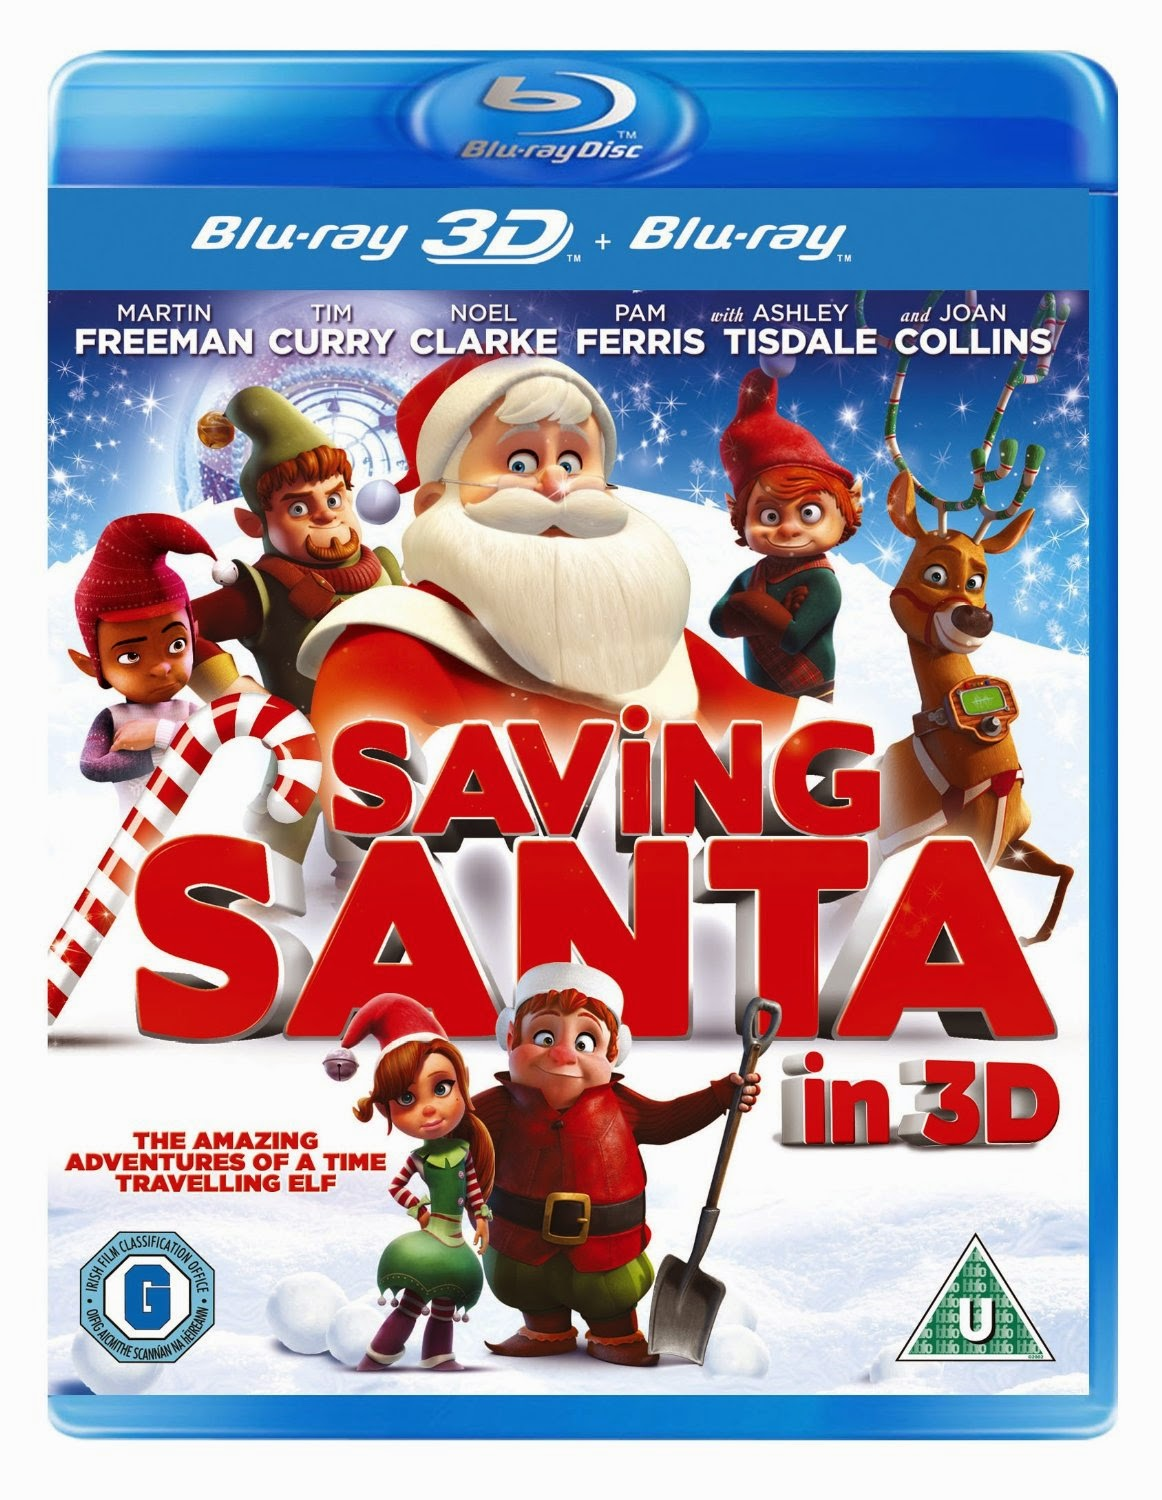 SAVING SANTA ON DVD FROM NOVEMBER 3RD....